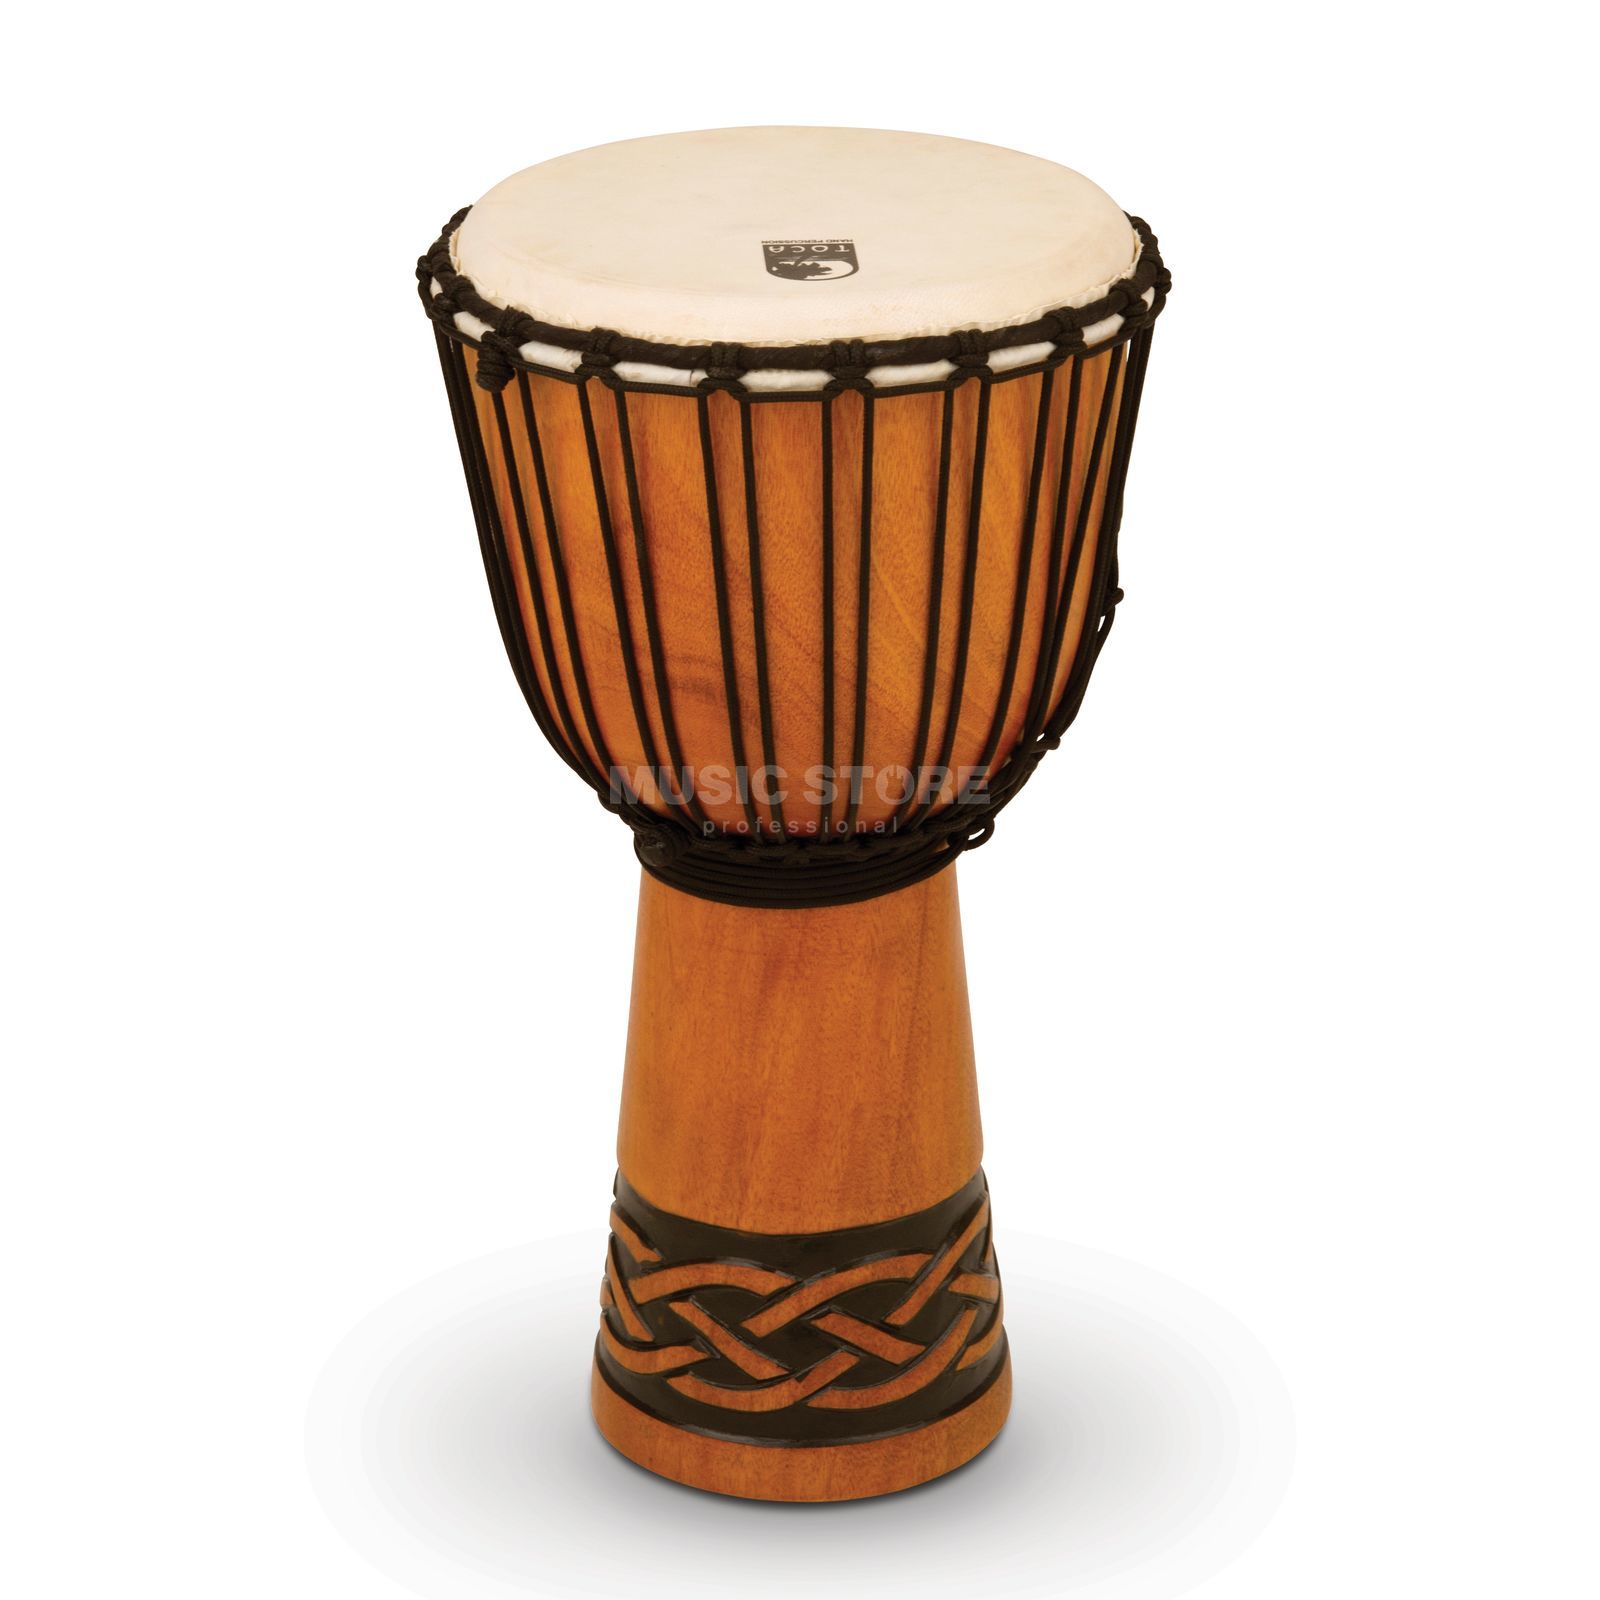 "Toca Percussion Origins Djembe TODJ-10CK, 10"", Celtic Knot #CK Изображение товара"